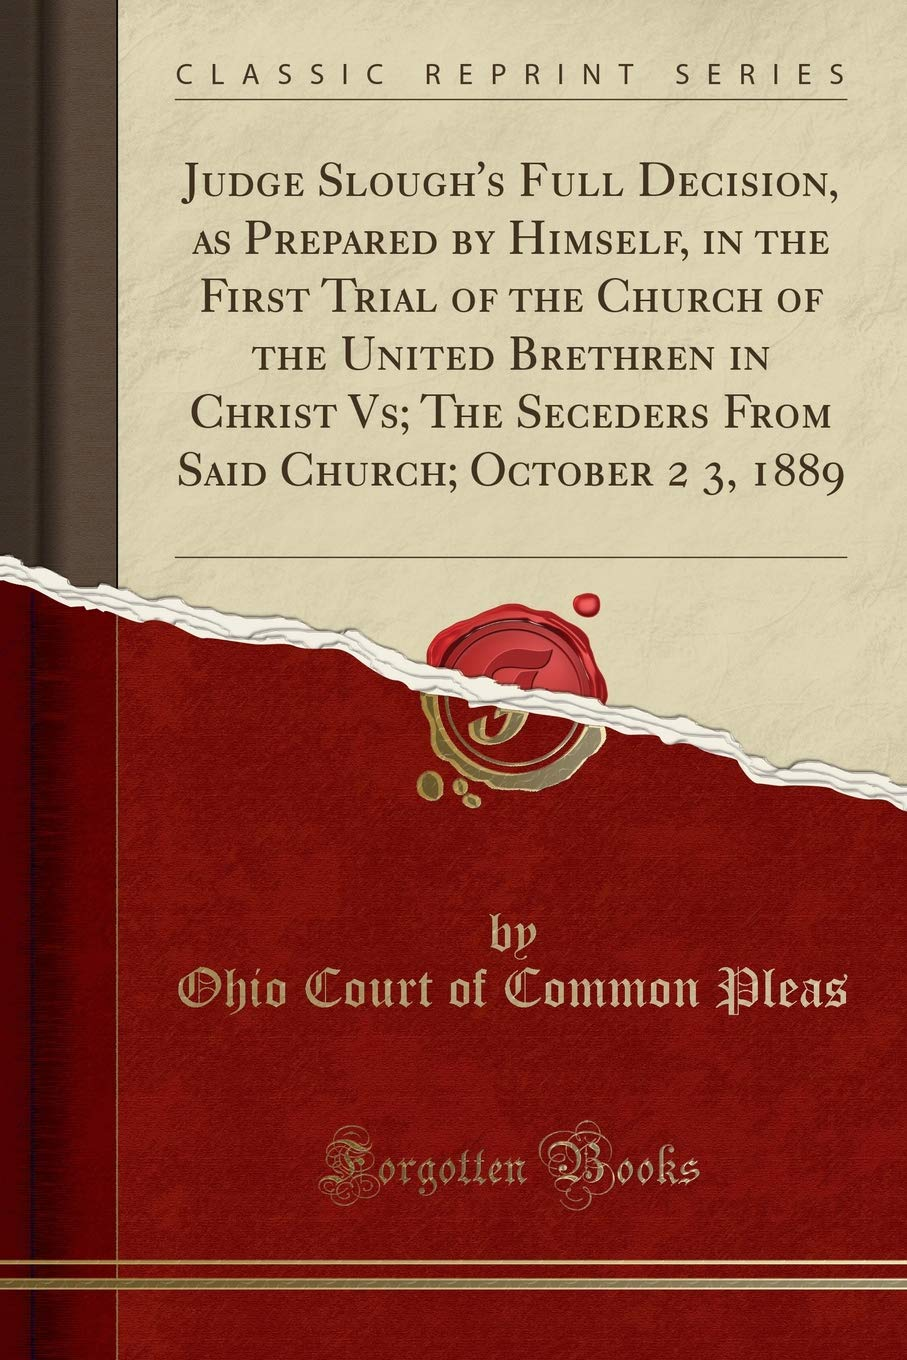 Download Judge Slough's Full Decision, as Prepared by Himself, in the First Trial of the Church of the United Brethren in Christ Vs; The Seceders From Said Church; October 2 3, 1889 (Classic Reprint) pdf epub